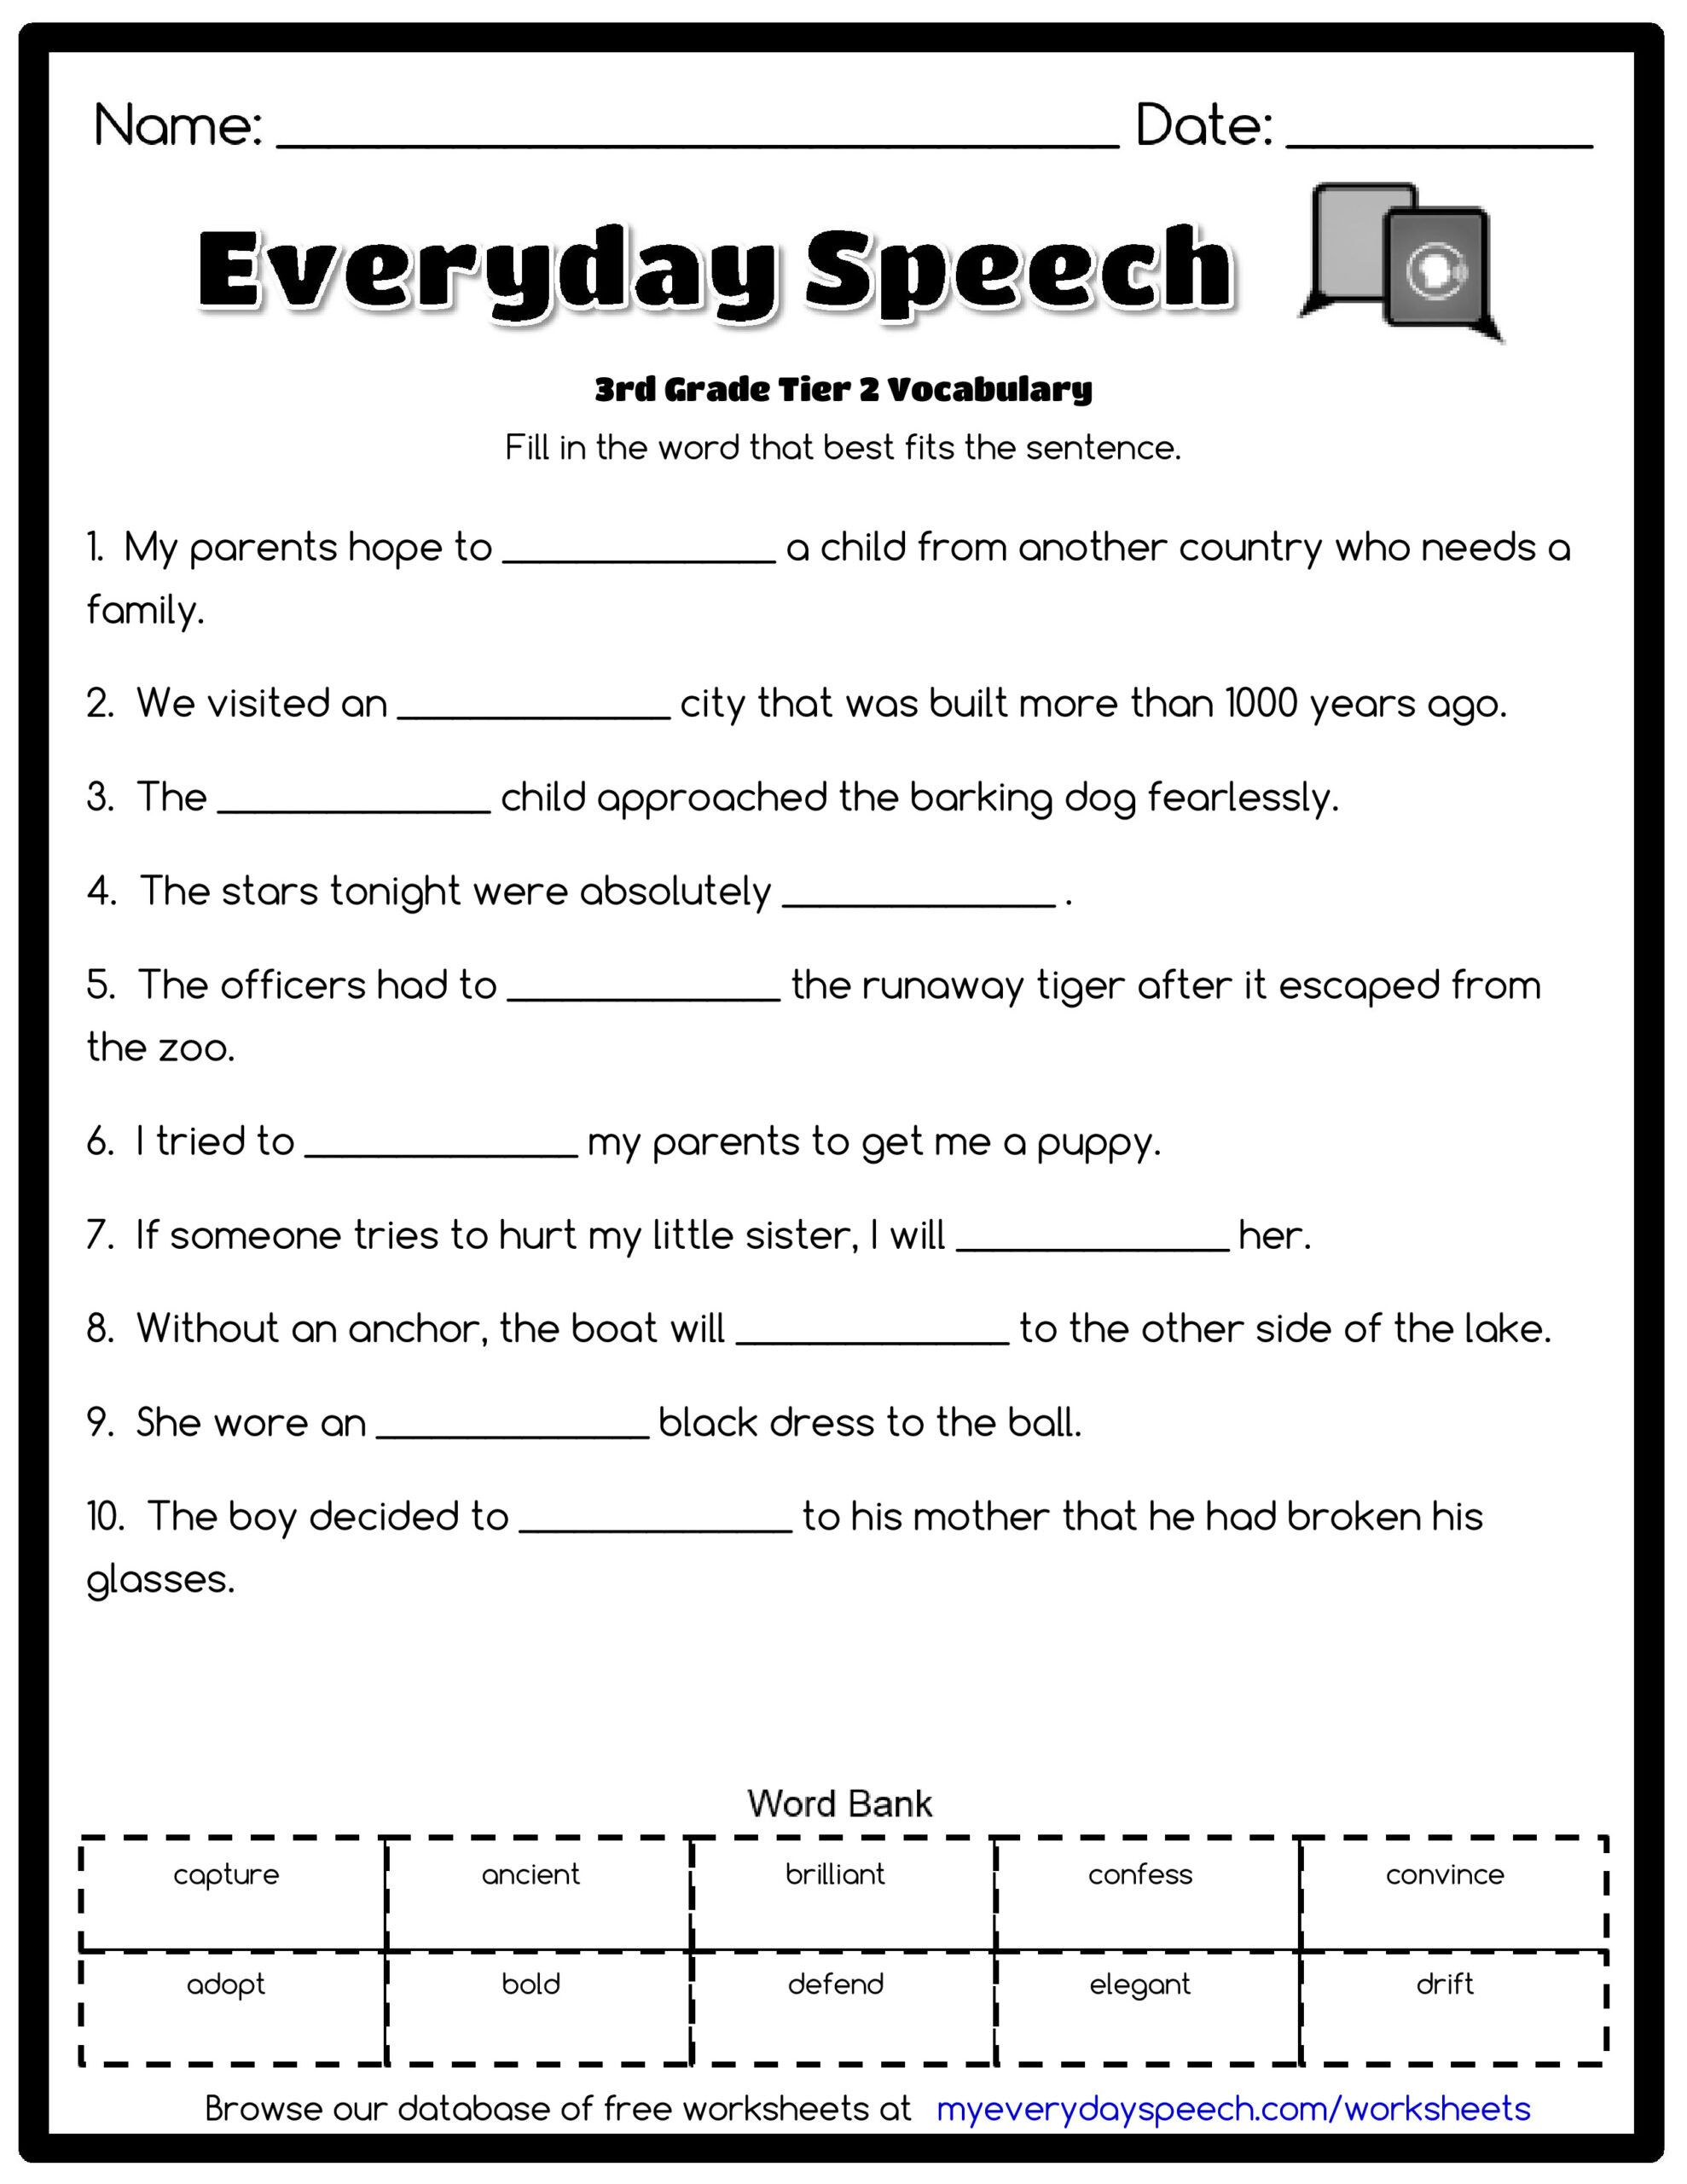 Vocabulary Worksheets for 1st Graders 3rd Grade Vocabulary Worksheets for Free Preschool Worksheet